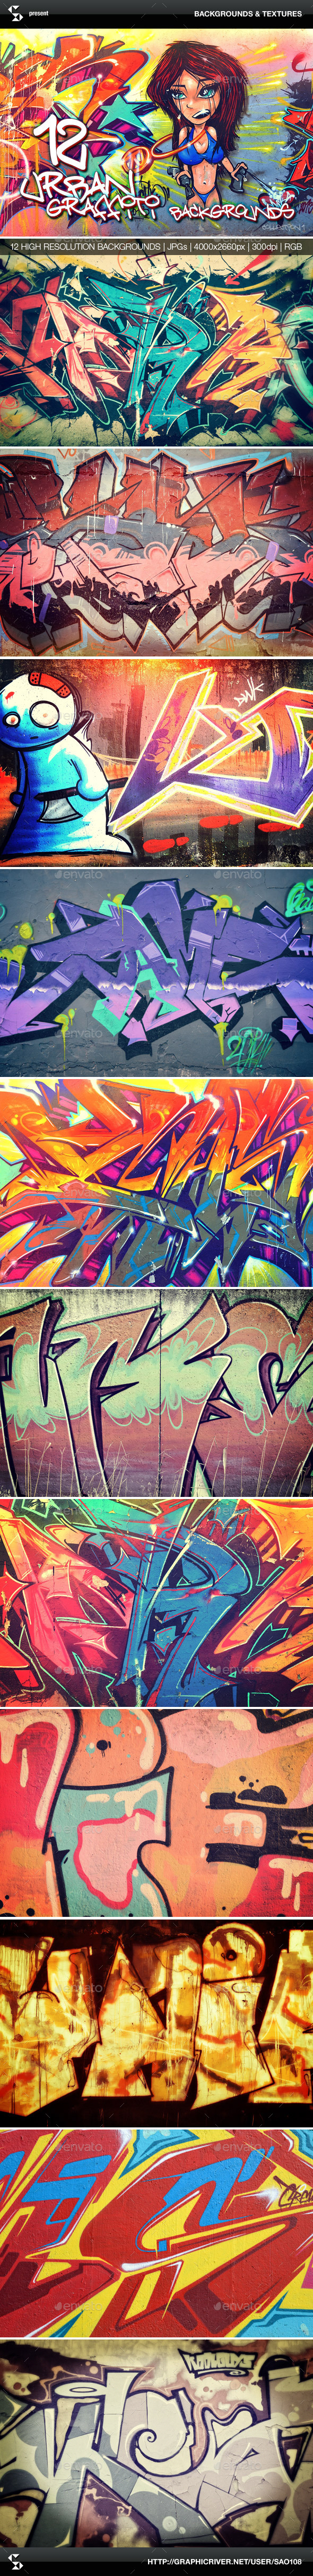 GraphicRiver Urban Graffiti Backgrounds Collection 1 10529770